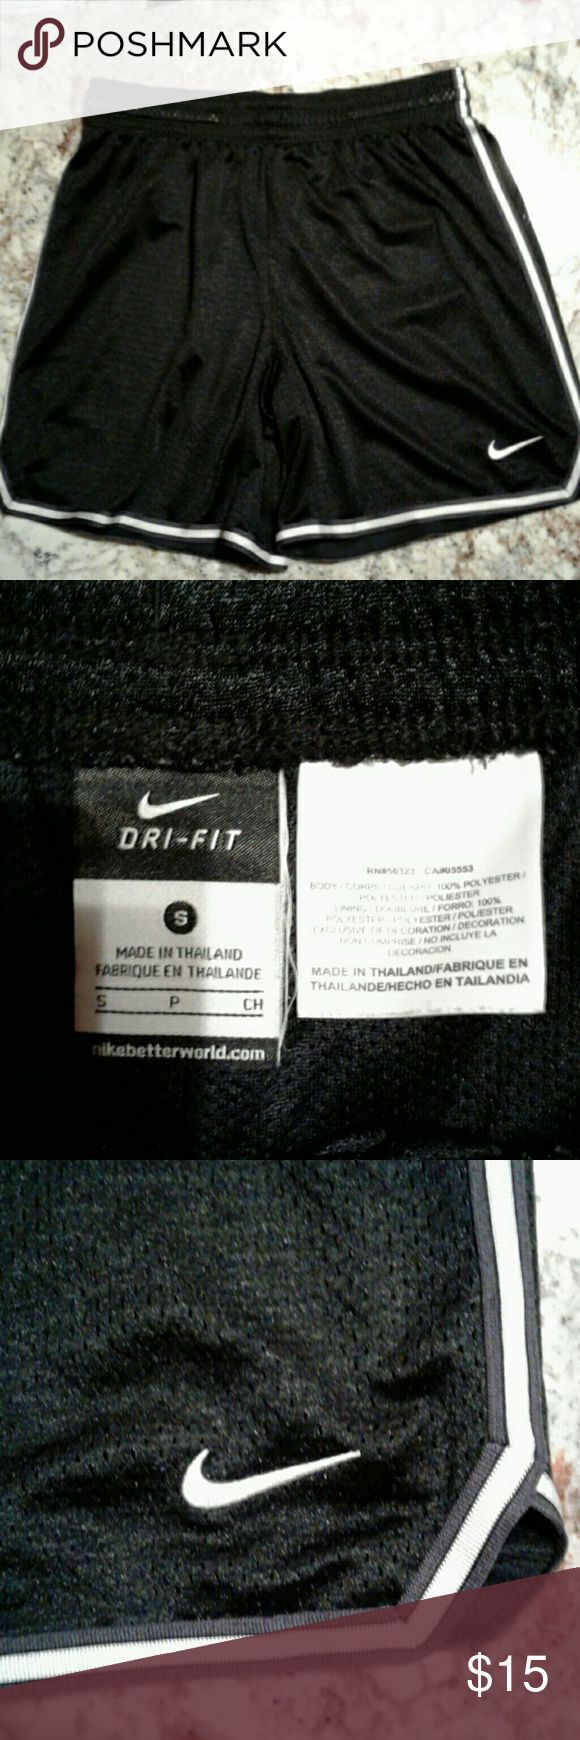 Women's Nike basketball shorts Excellent condition no holes or stains, or snags, size small black Nike drifit basketball shorts. Nike Shorts